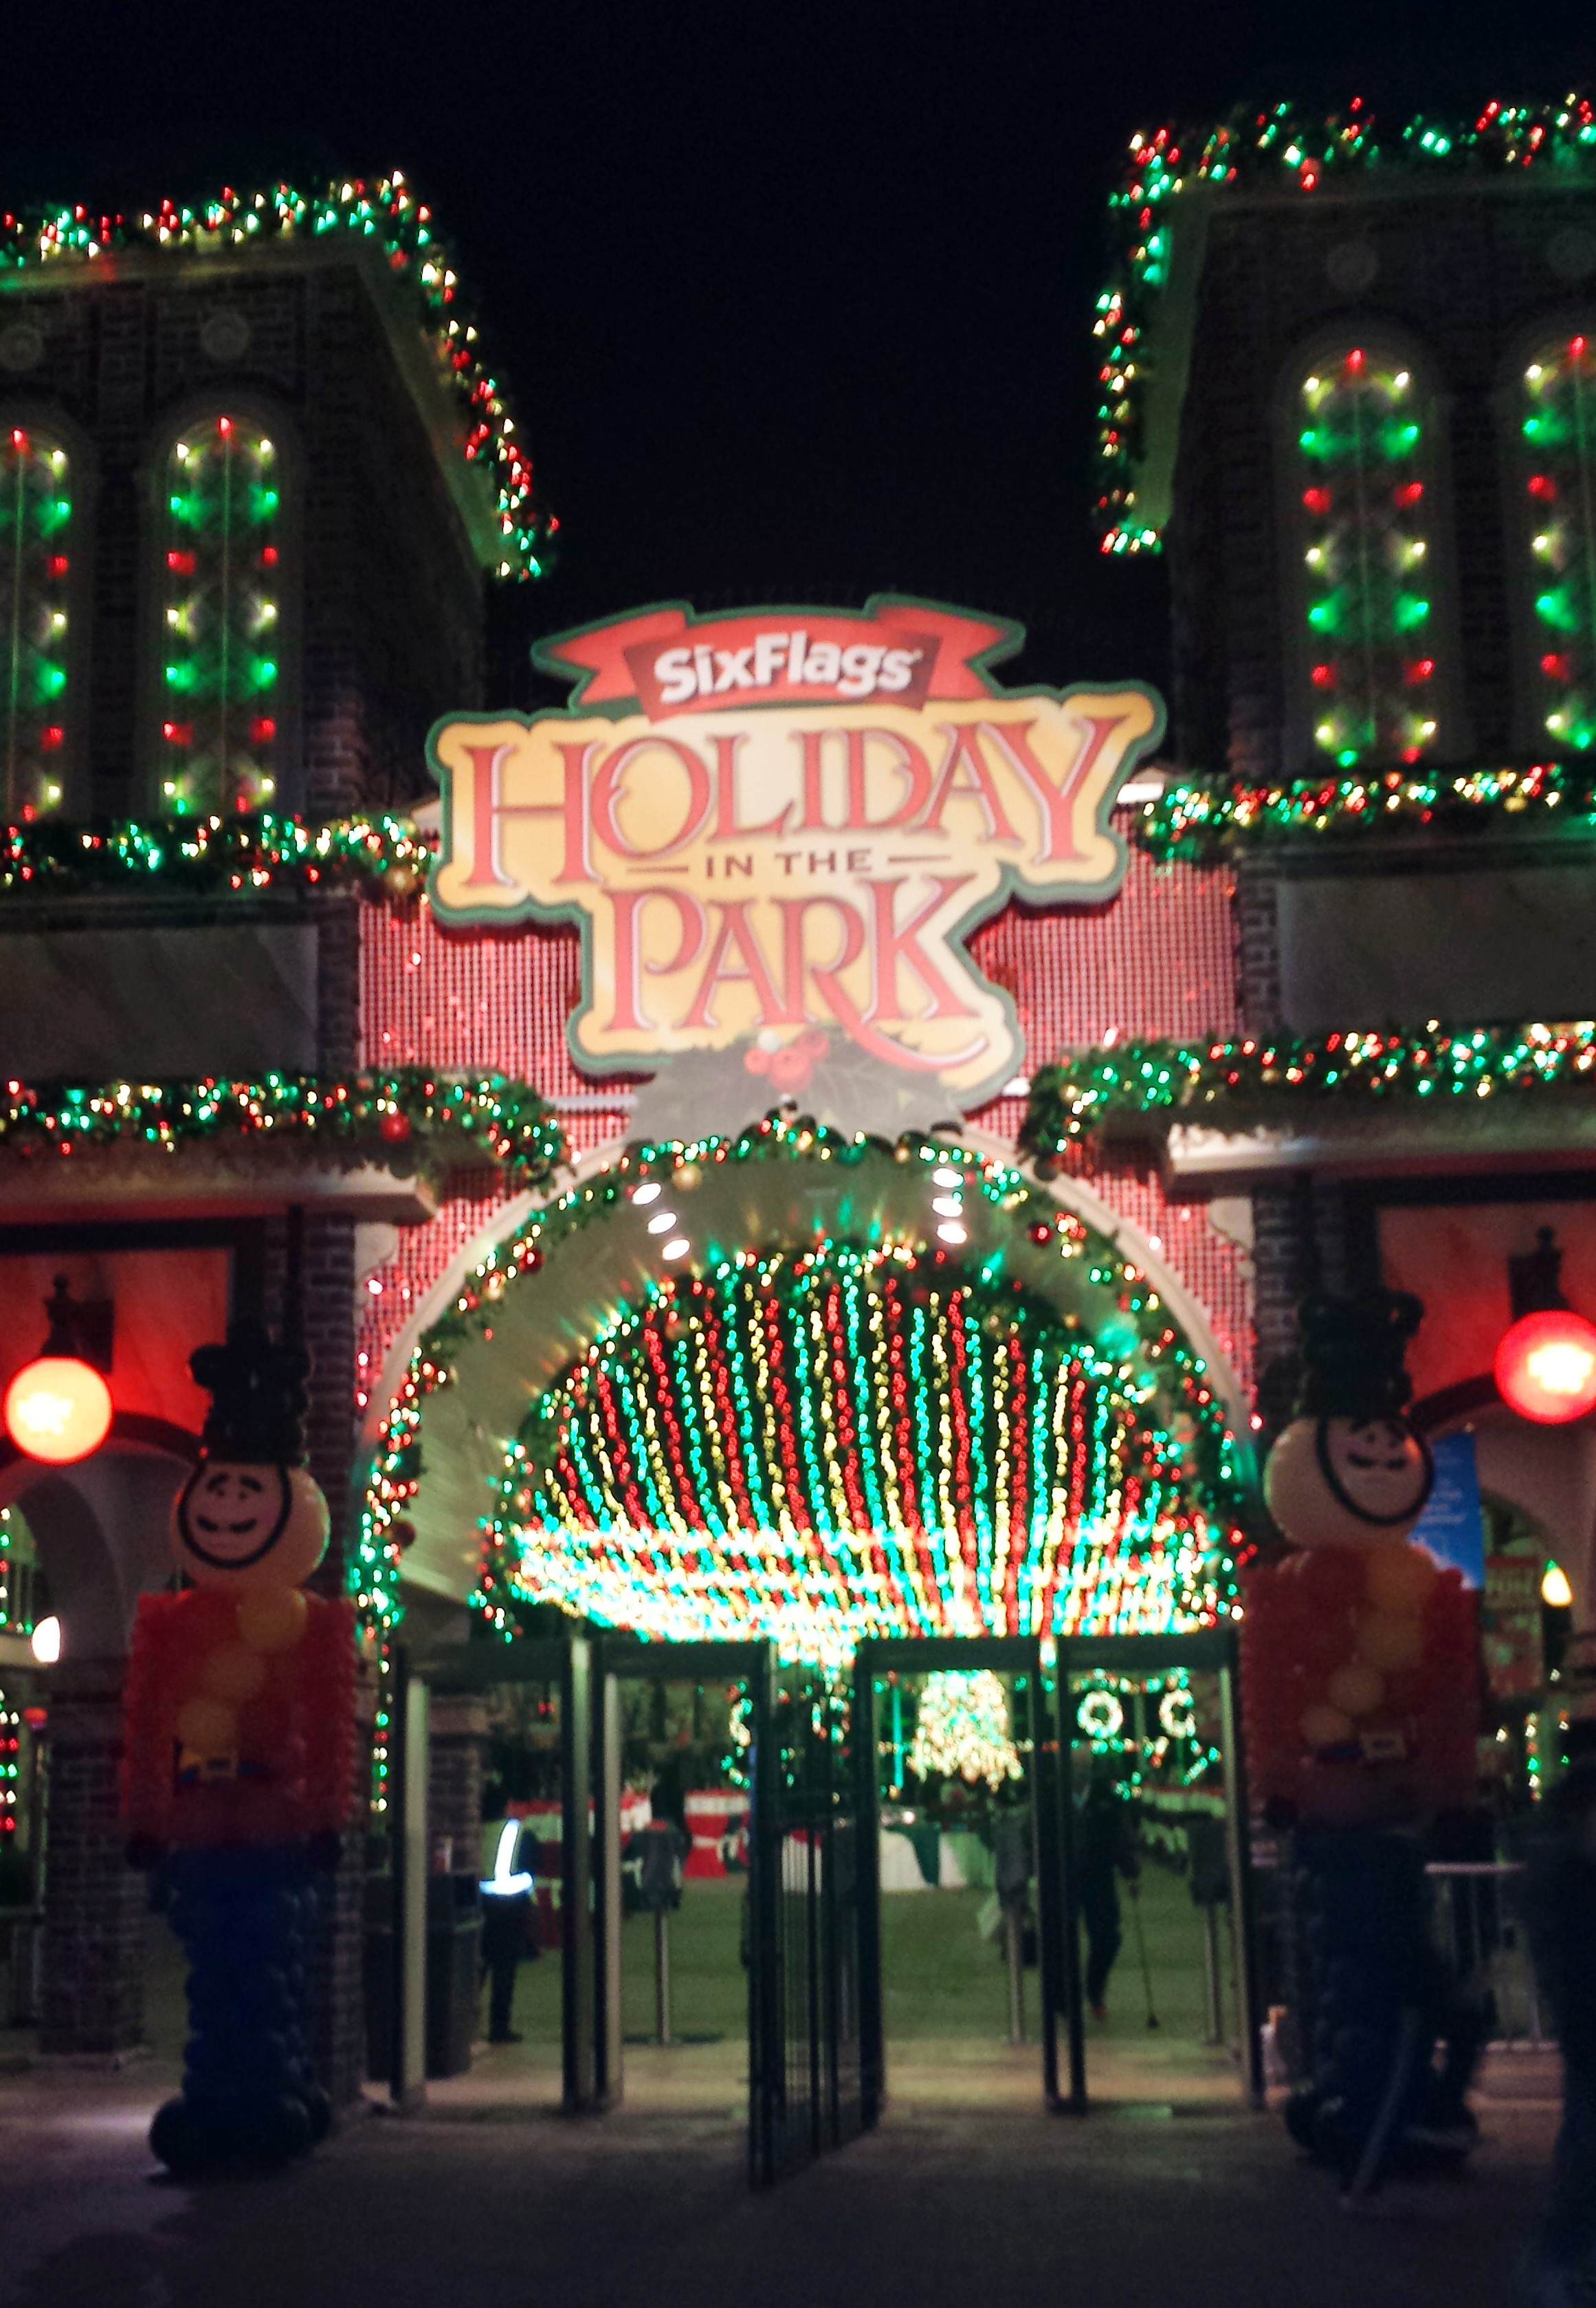 Six Flags Over Georgia Discounts Last Days For Holiday In The Park  E2 80 A2 Mamalicious Maria